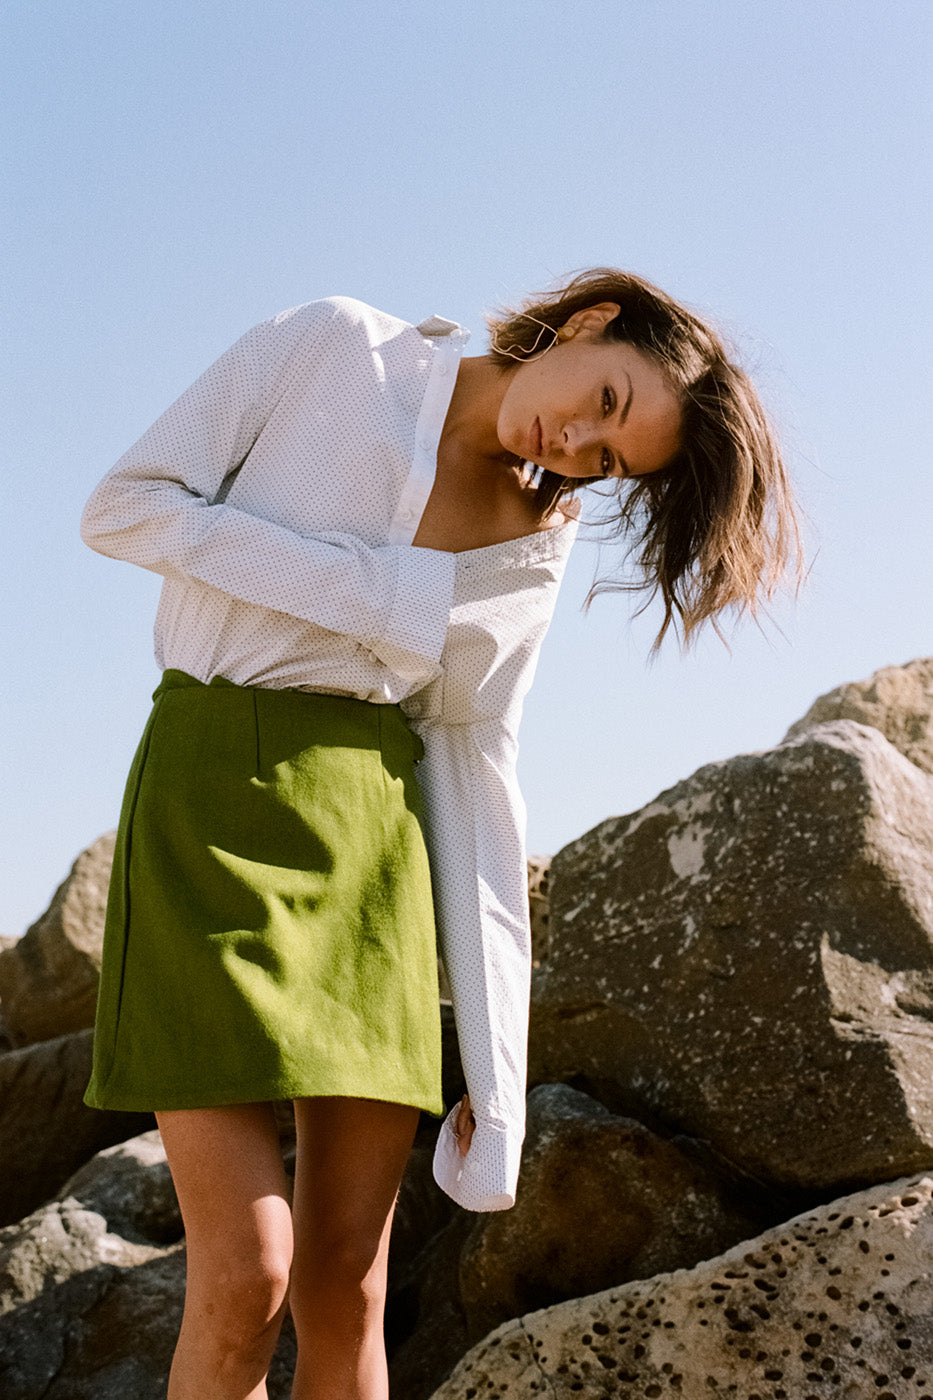 Hew clothing white shirt and green skirt